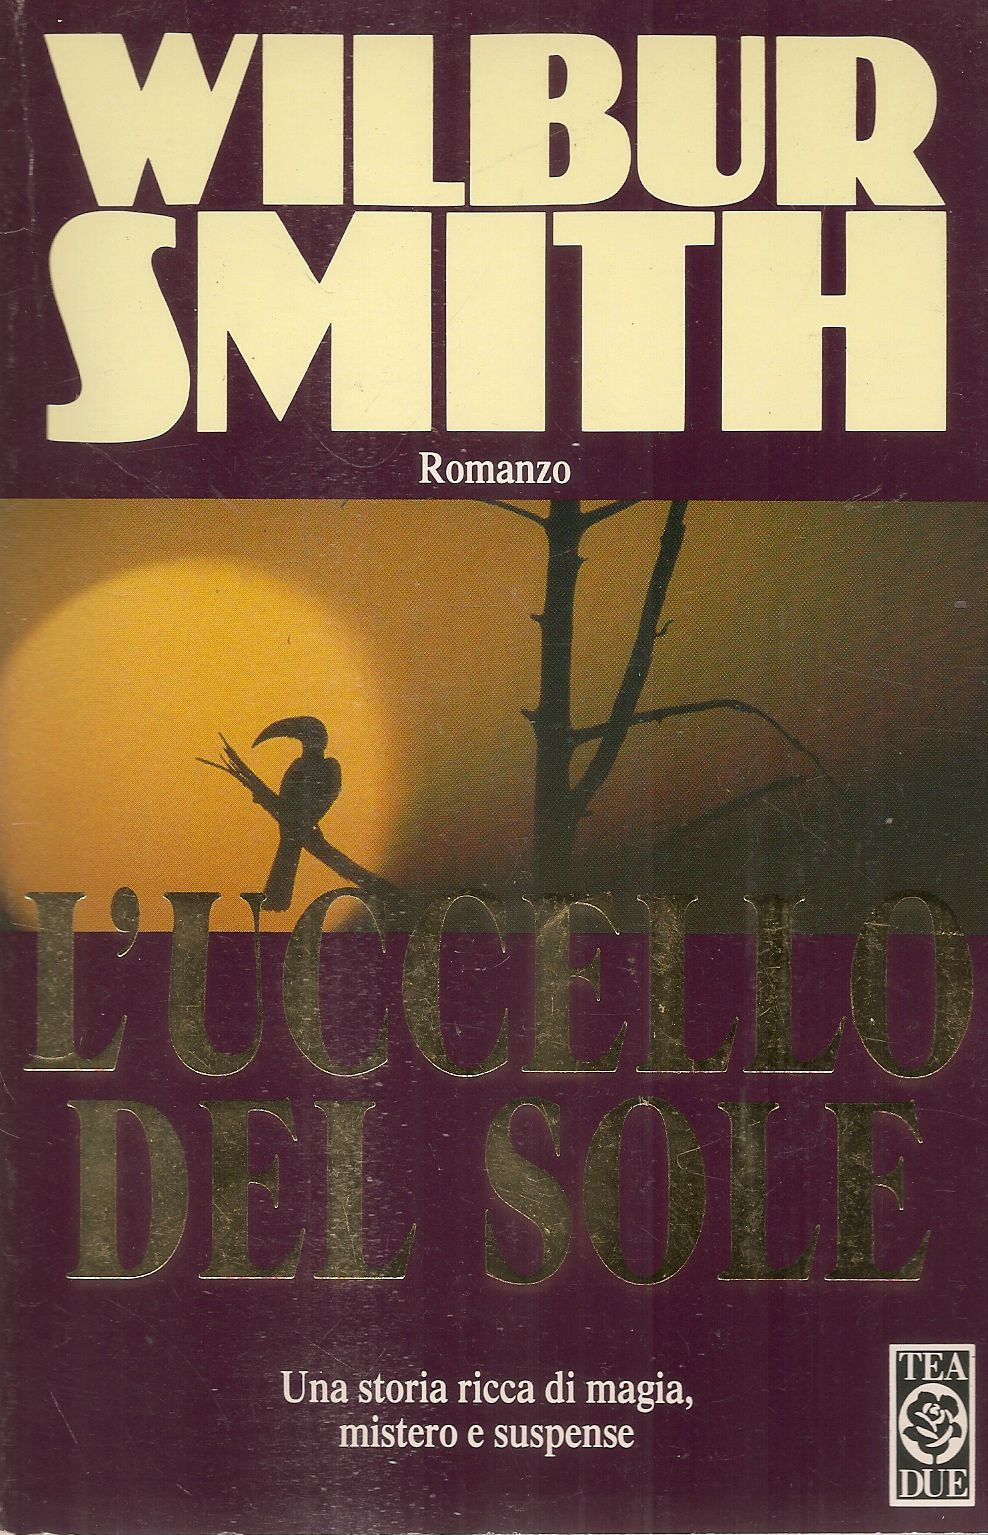 L'UCCELLO DEL SOLE - WILBUR SMITH - TEA DUE 1997